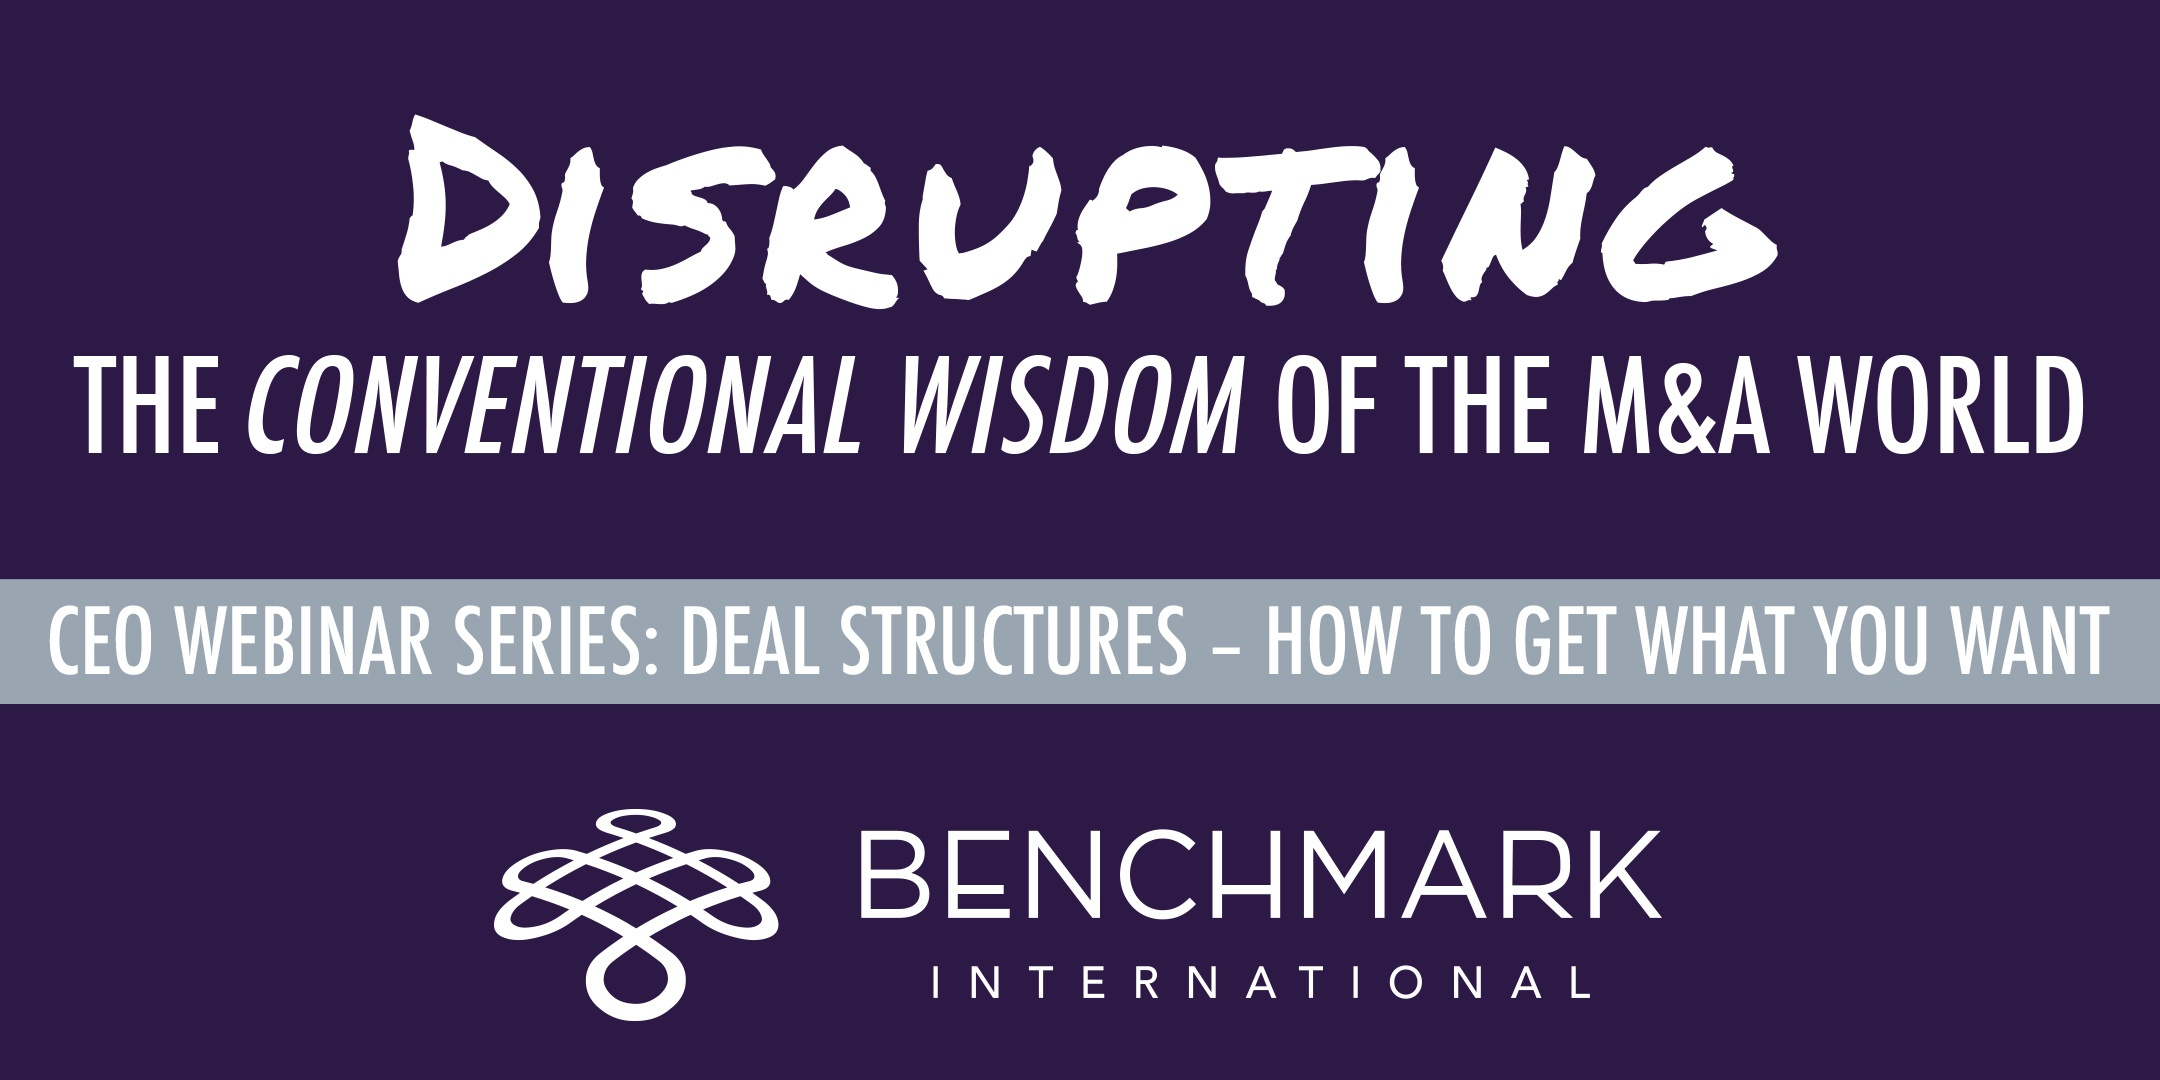 Webinar: Deal Structures – How to Get What You Want... Register Now!